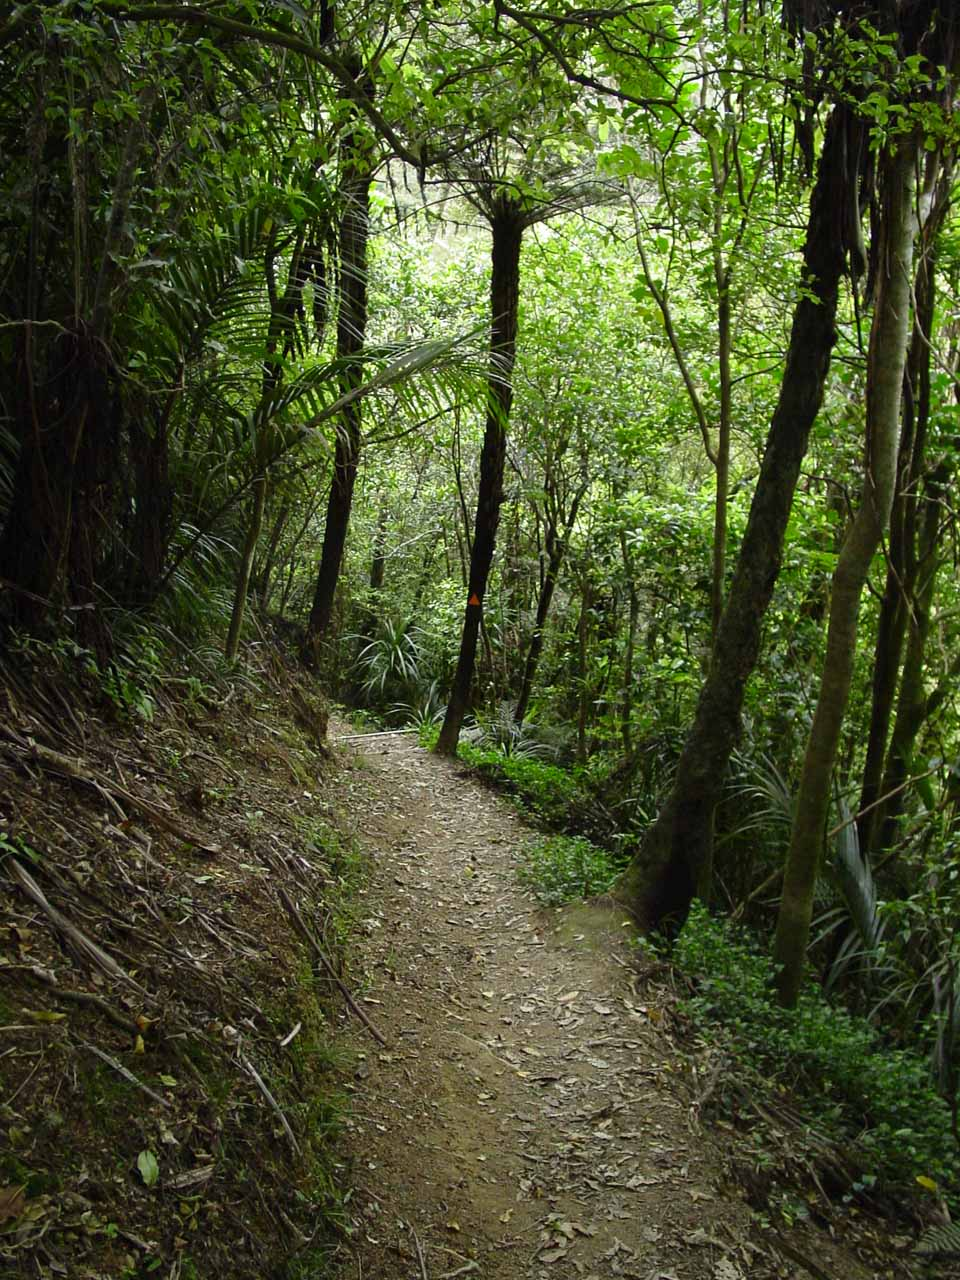 The track descending from the Gorge Road to the Ahuroa River